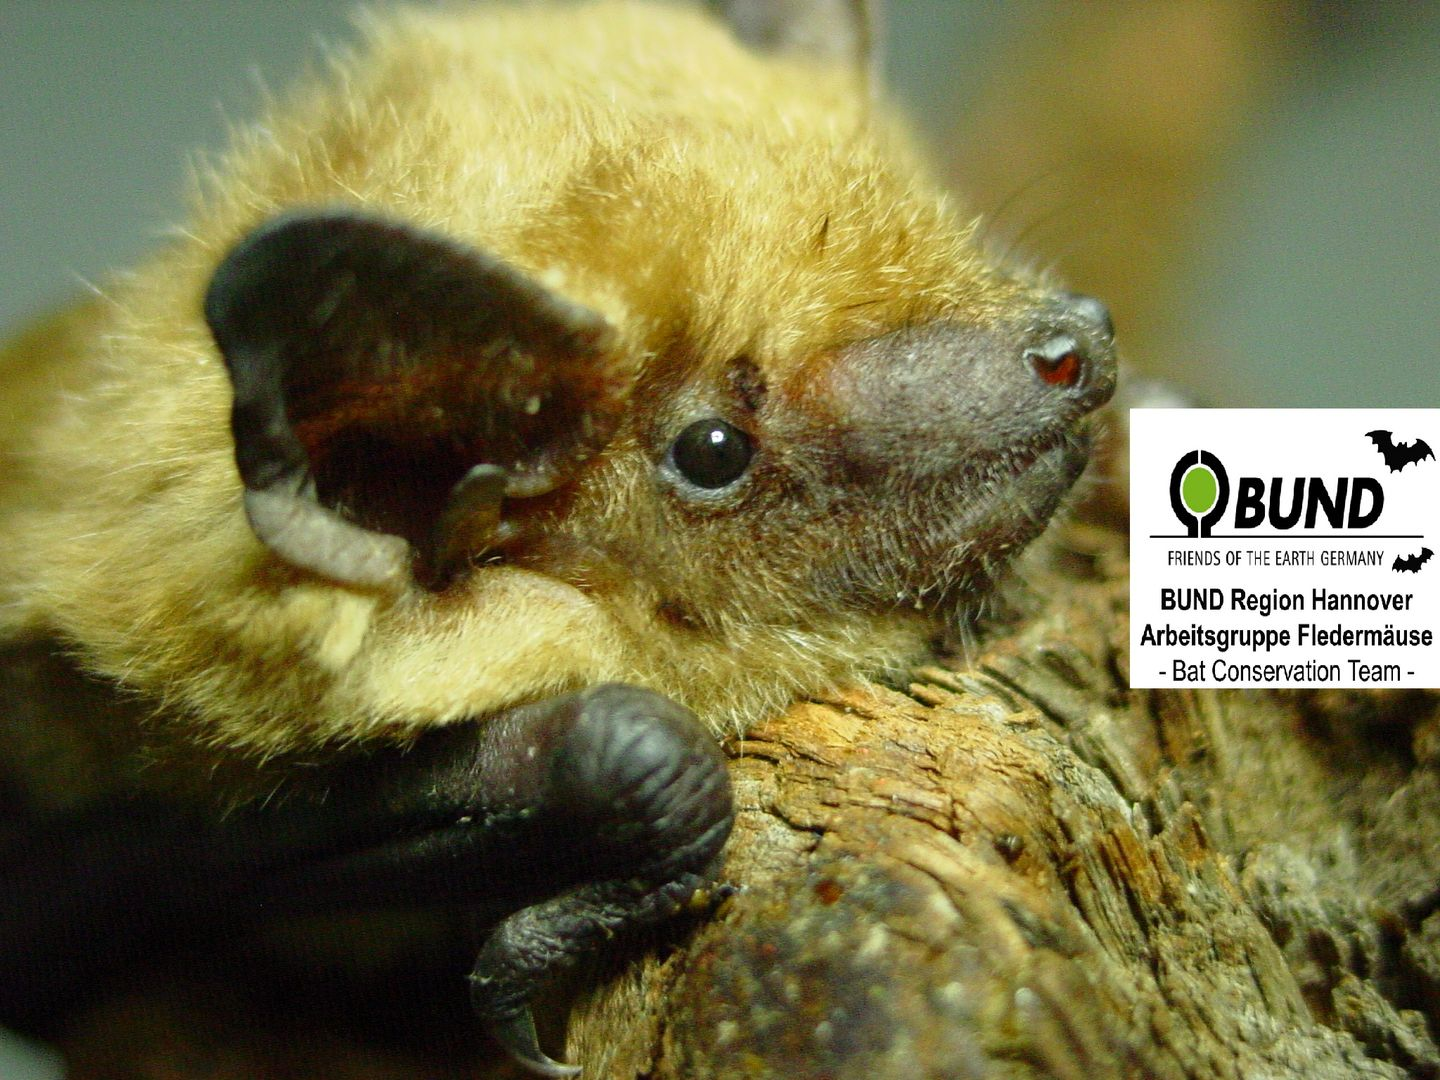 Logo AG Fledermäuse BUND Region Hannover // the picture shows the logo Bat Conservation Team Friends of the Earth Germany Hannover - eine Fledermaus im Porträt mit dem BUND Logo ein grüner Erdball im halboffenen schwarzen Kreis. A bat in profile with the international BUND logo a green ball in a half open black circle